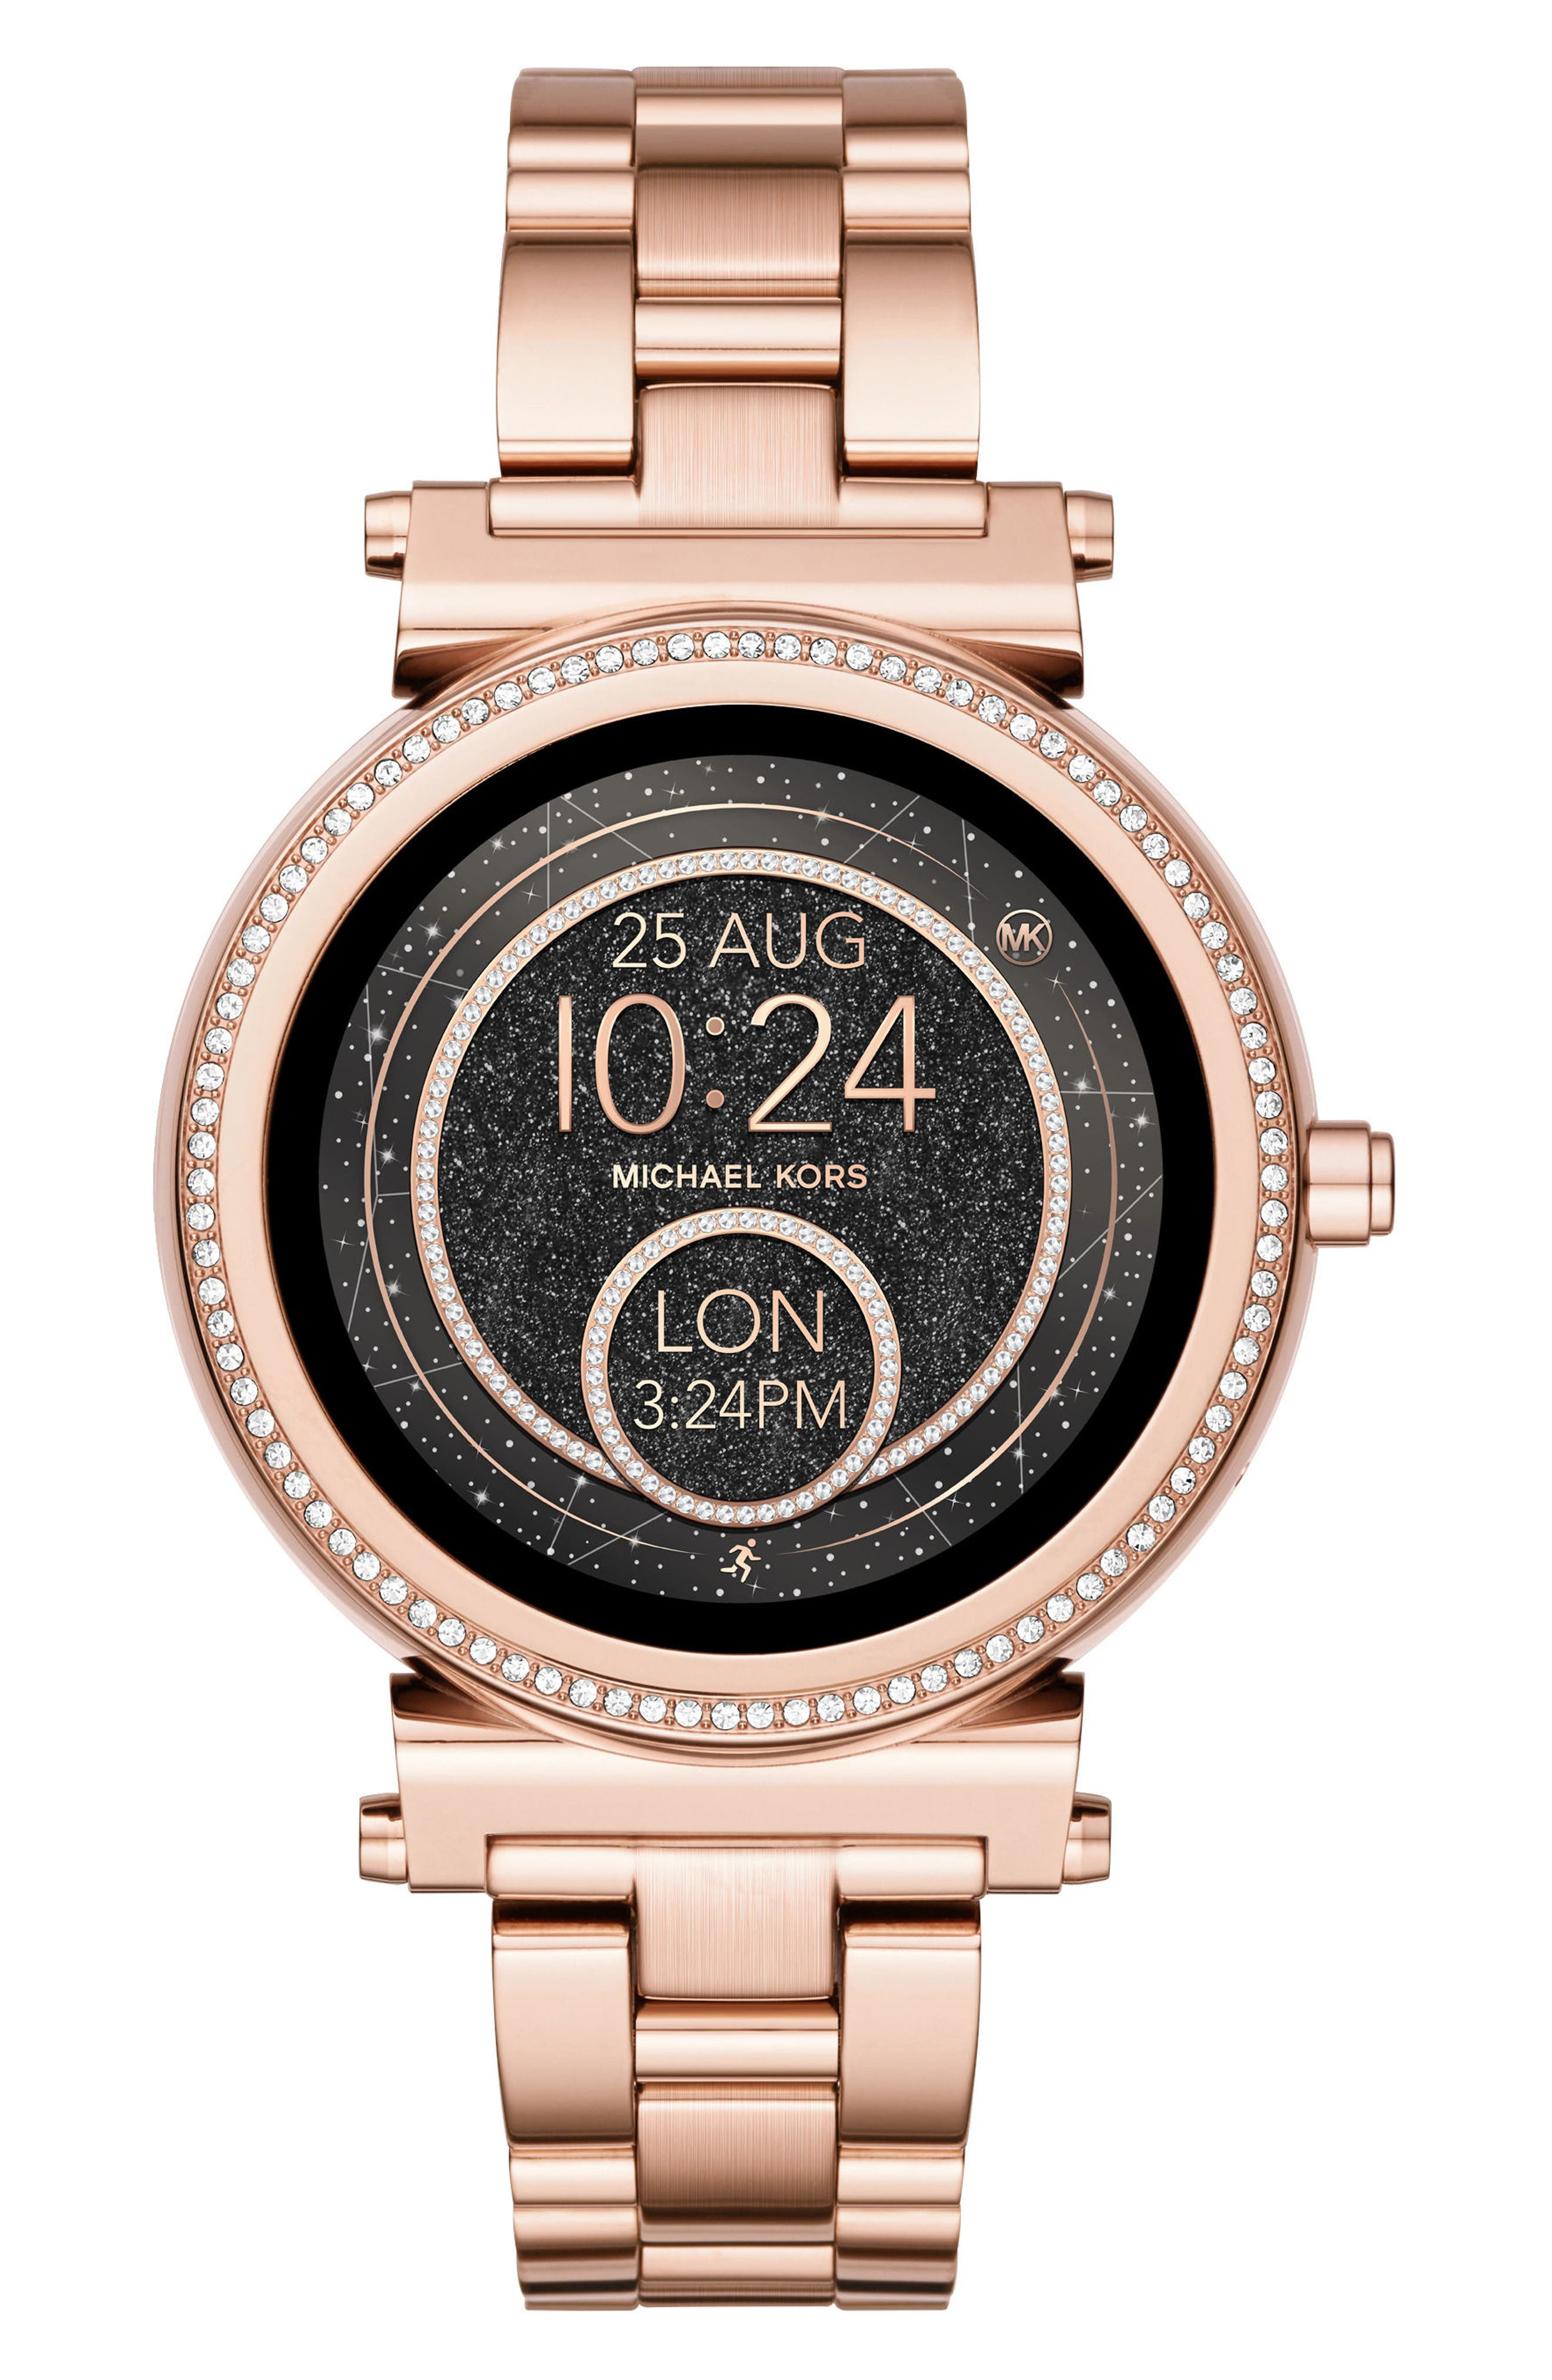 MICHAEL KORS ACCESS Sofie Smart Bracelet Watch, 42Mm in Rose Gold